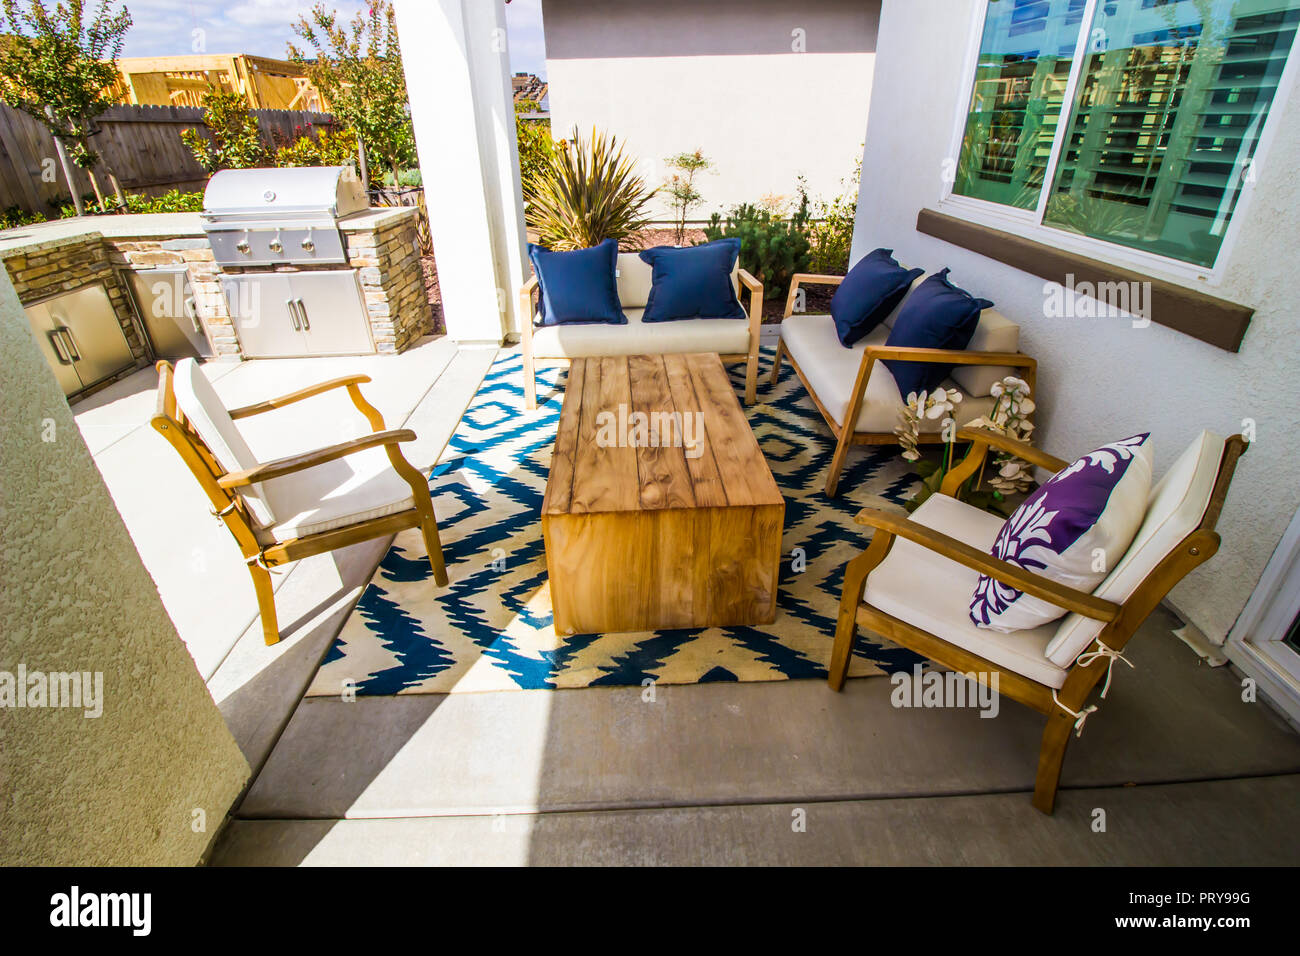 Outdoor Rear Yard Patio With BBQ & Furniture - Stock Image